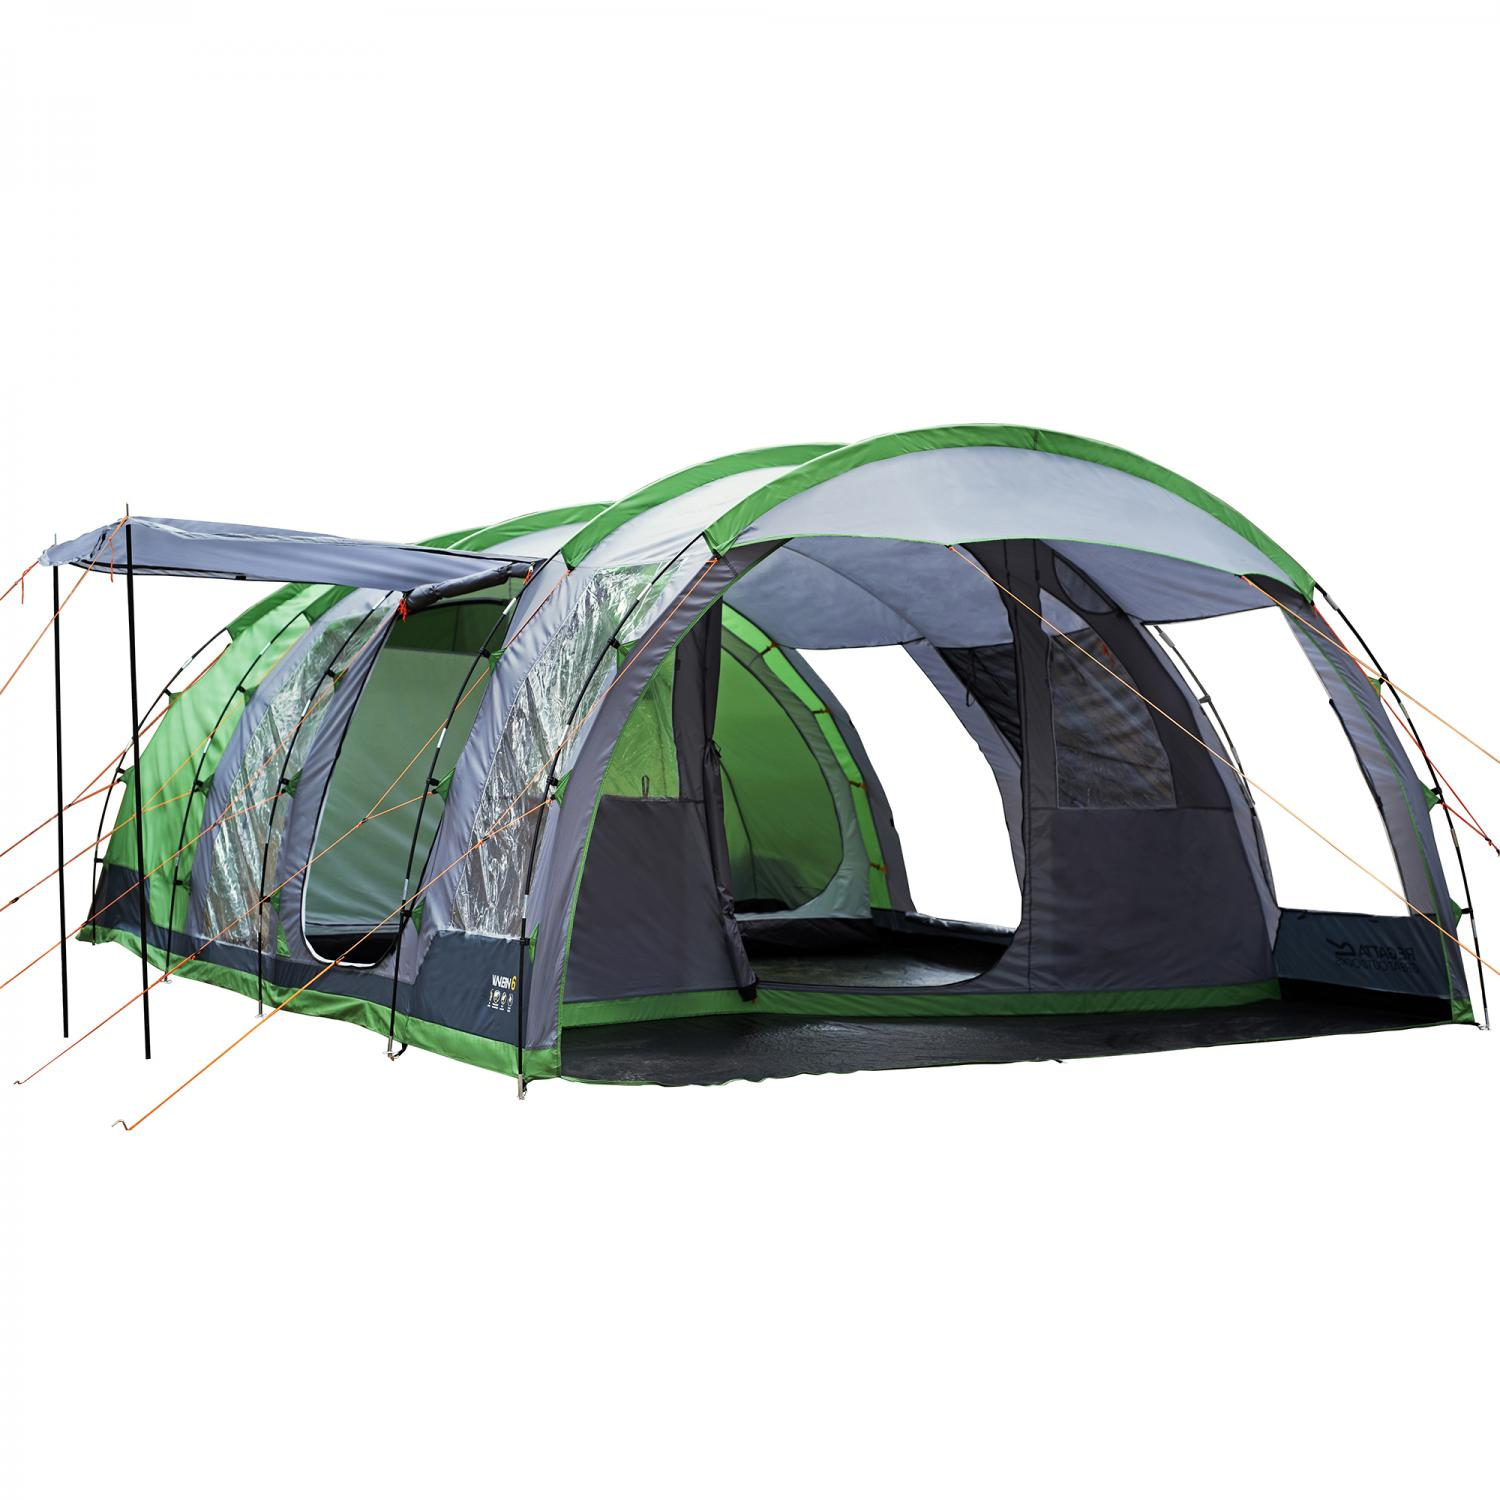 6 Man Tent Shop For Cheap Outdoor Adventure And Save Online